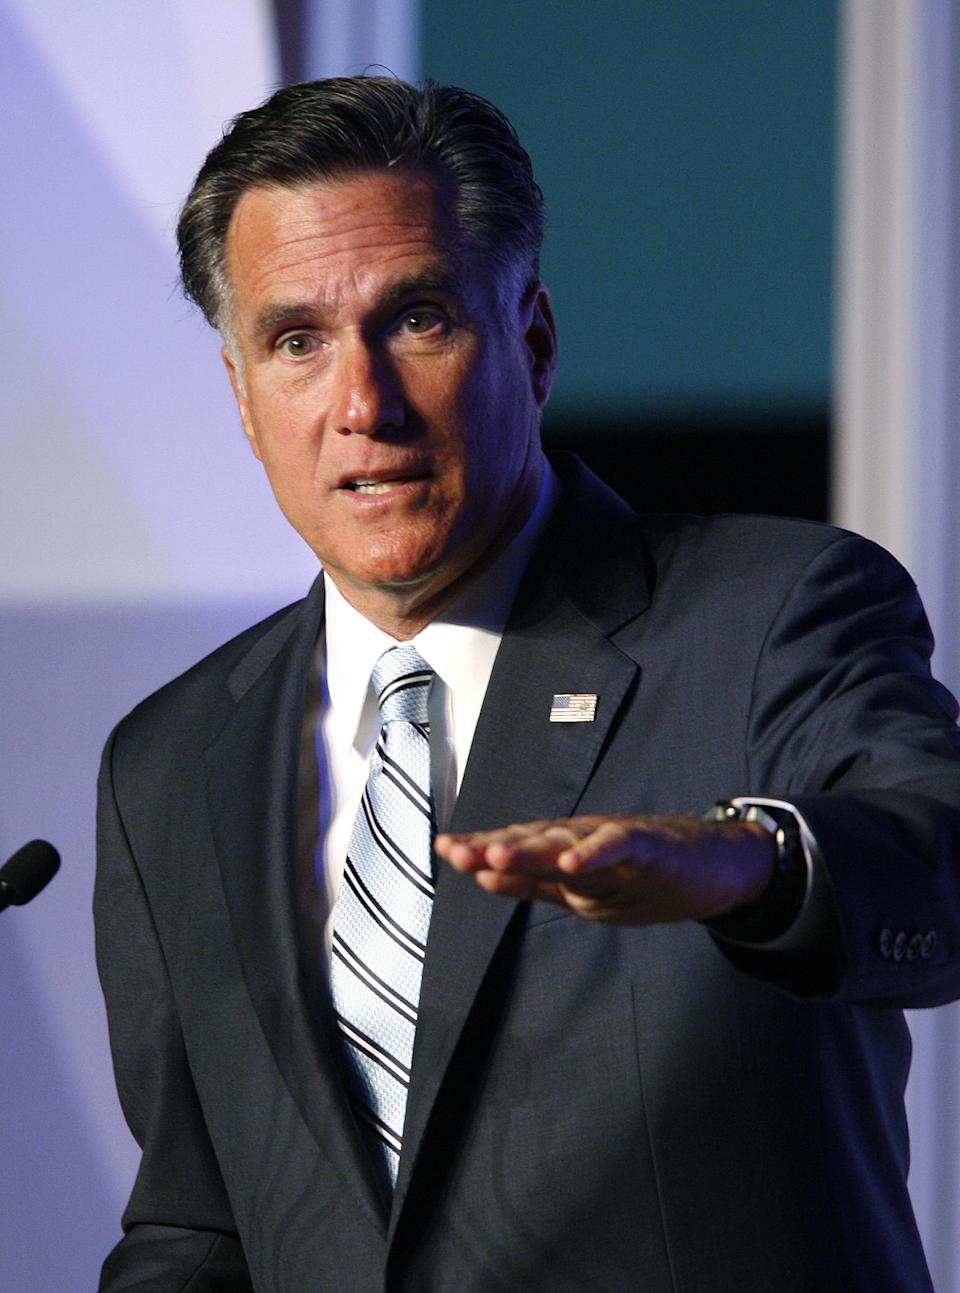 Republican presidential candidate and former Massachusetts Gov. Mitt Romney addresses the U.S. Hispanic Chamber of Commerce in Los Angeles, Monday, Sept. 17, 2012.  (AP Photo/David McNew)